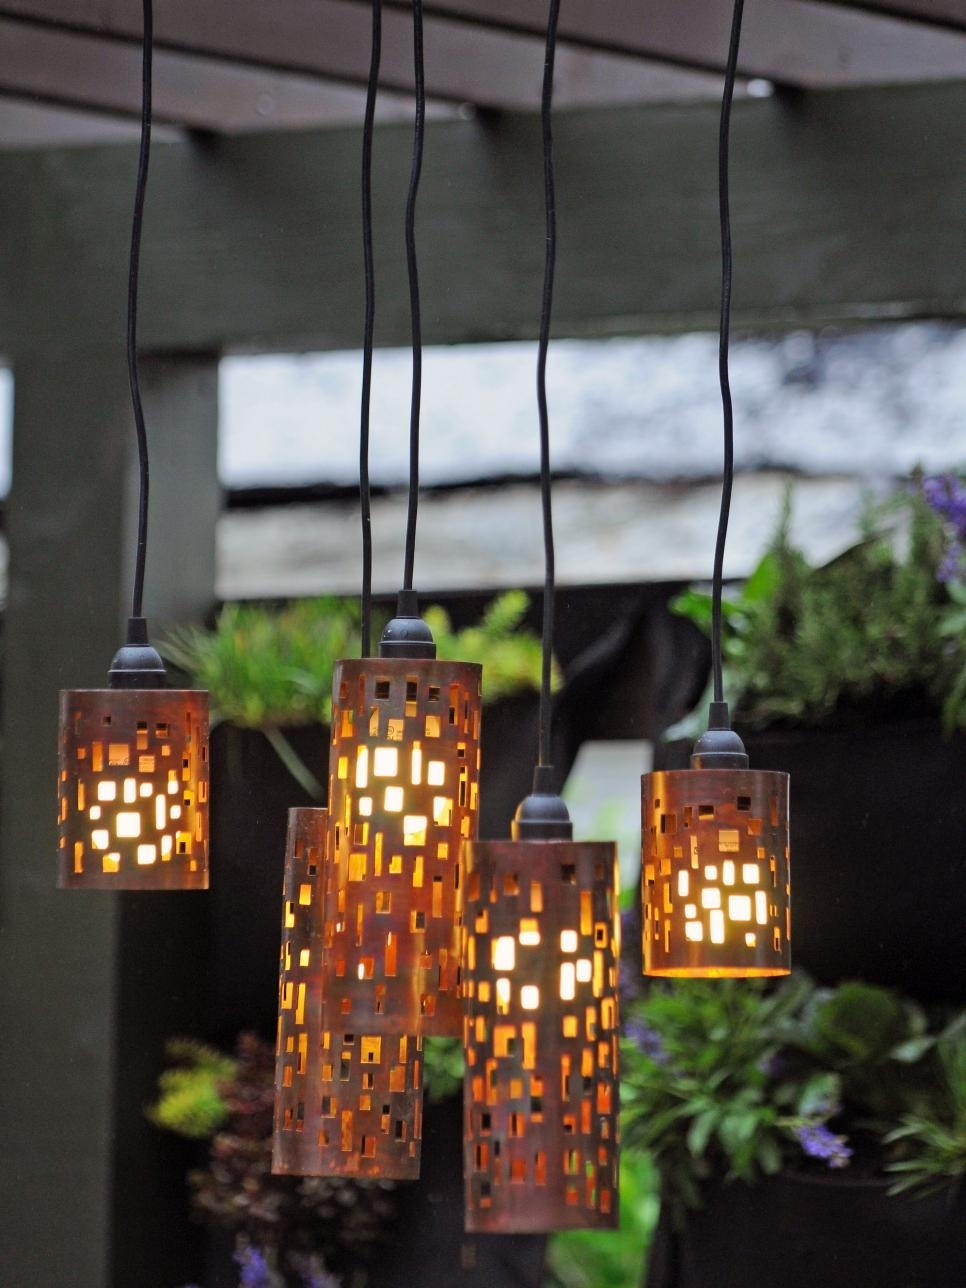 Set The Mood With Outdoor Lighting Trends And Pation Hanging Lights Within Outdoor Hanging Lights For Patio (View 15 of 15)